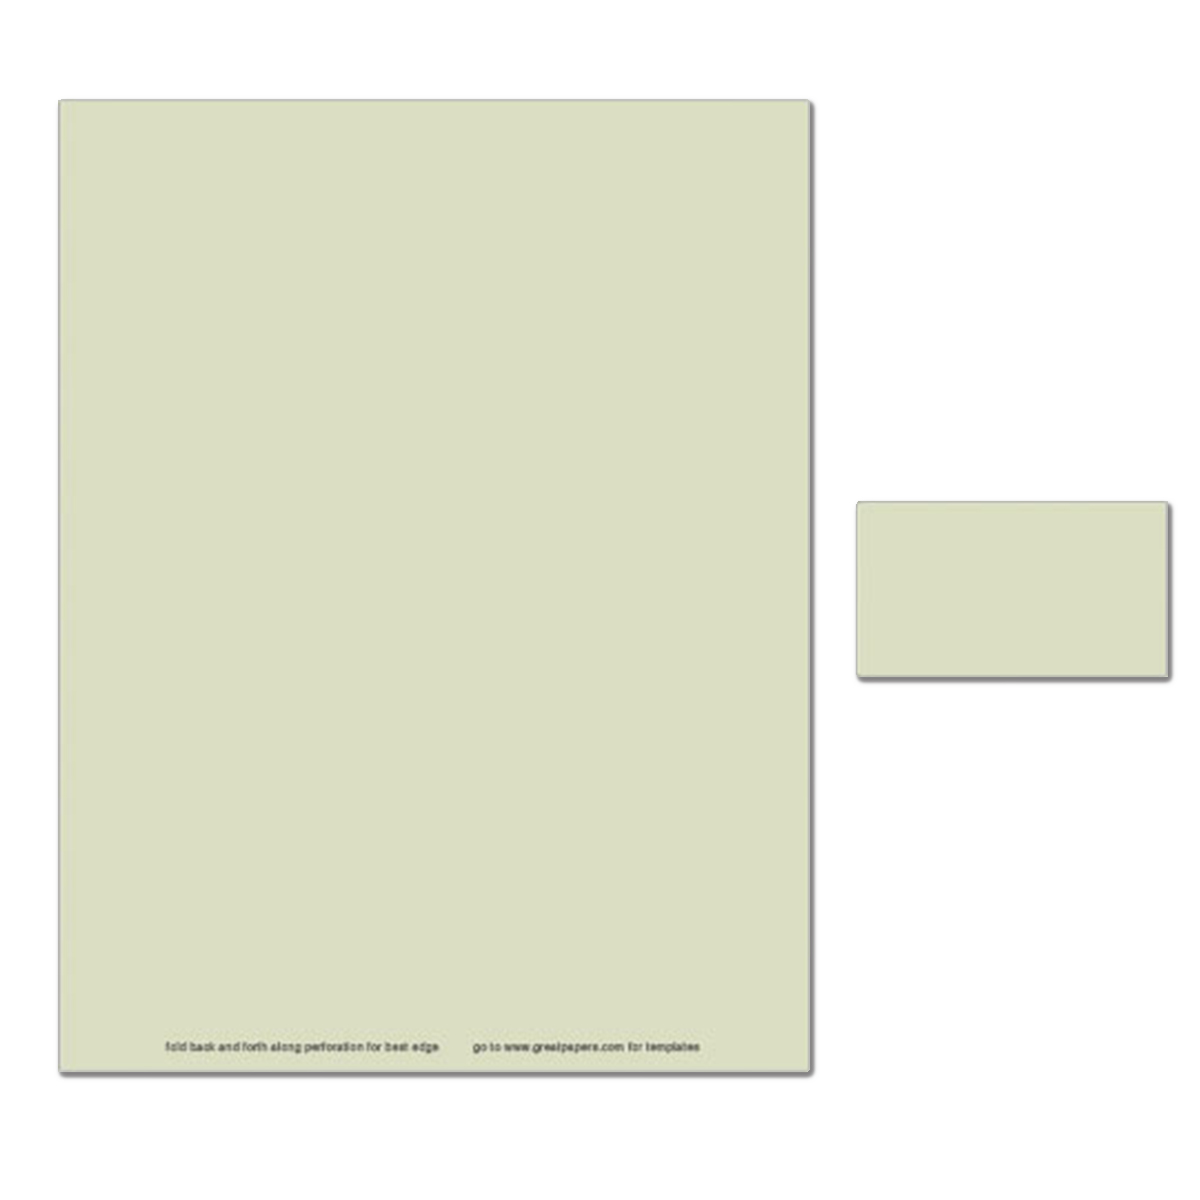 Executive Green Business Card - 250 Count